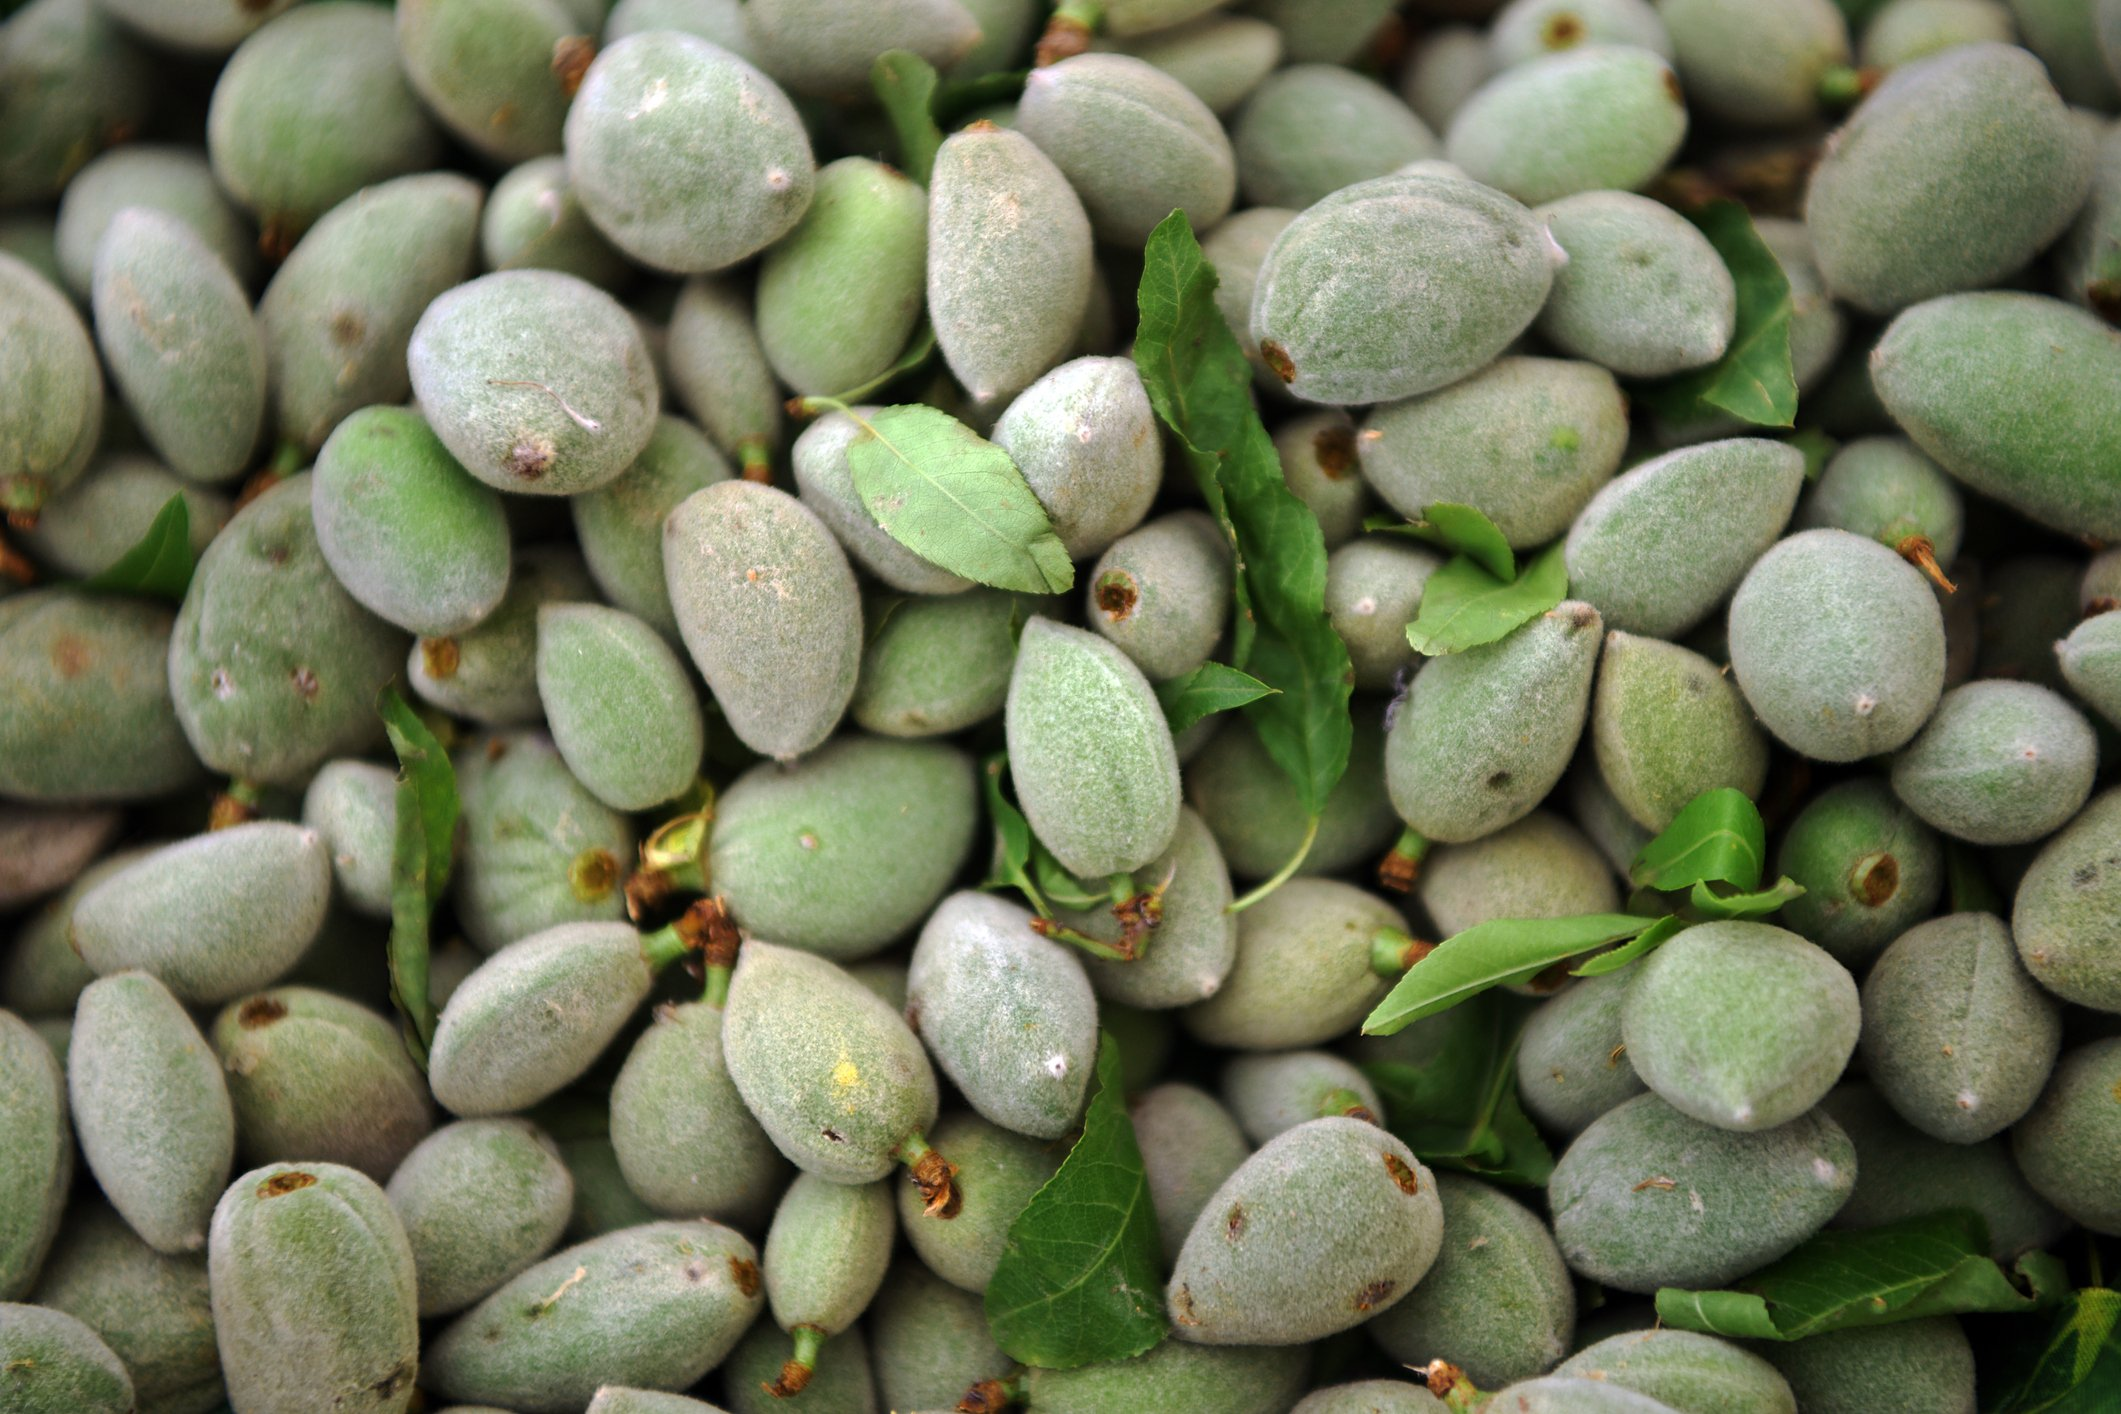 Turks in the Aegean also eat fresh green almonds with a bit of salt, as well. (iStock Photo)